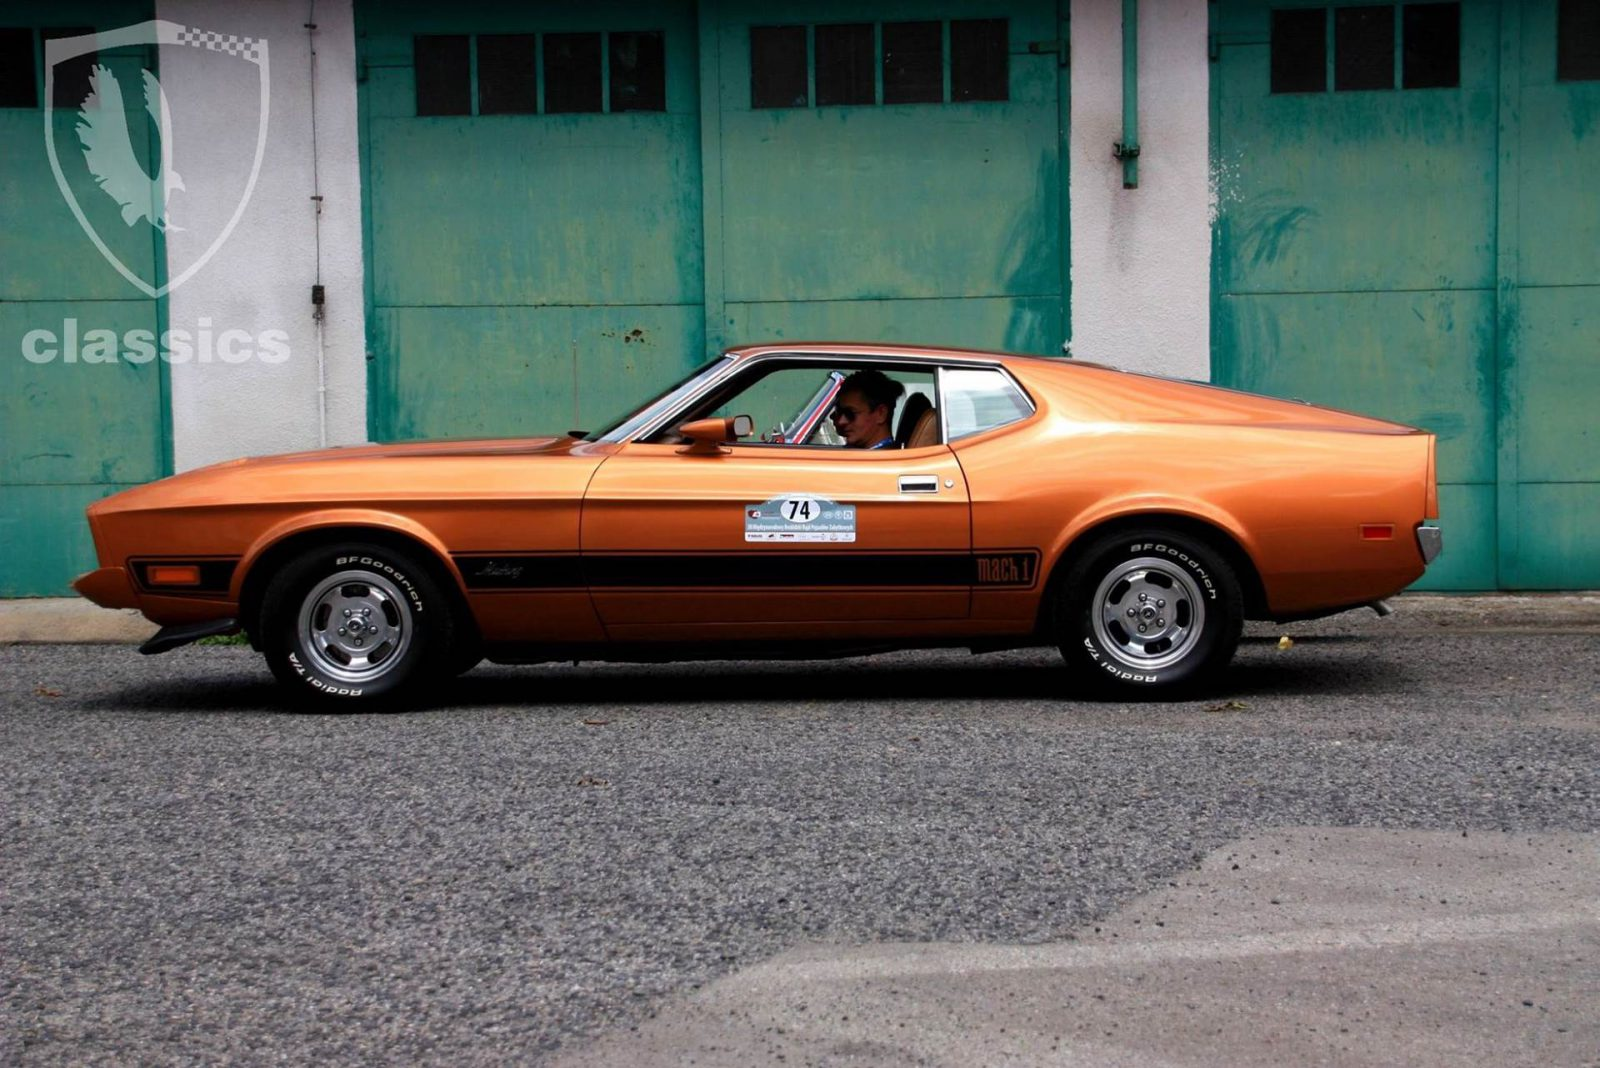 new concept d2772 73400 Ford Mustang Mach 1 (1973)-Classic Group